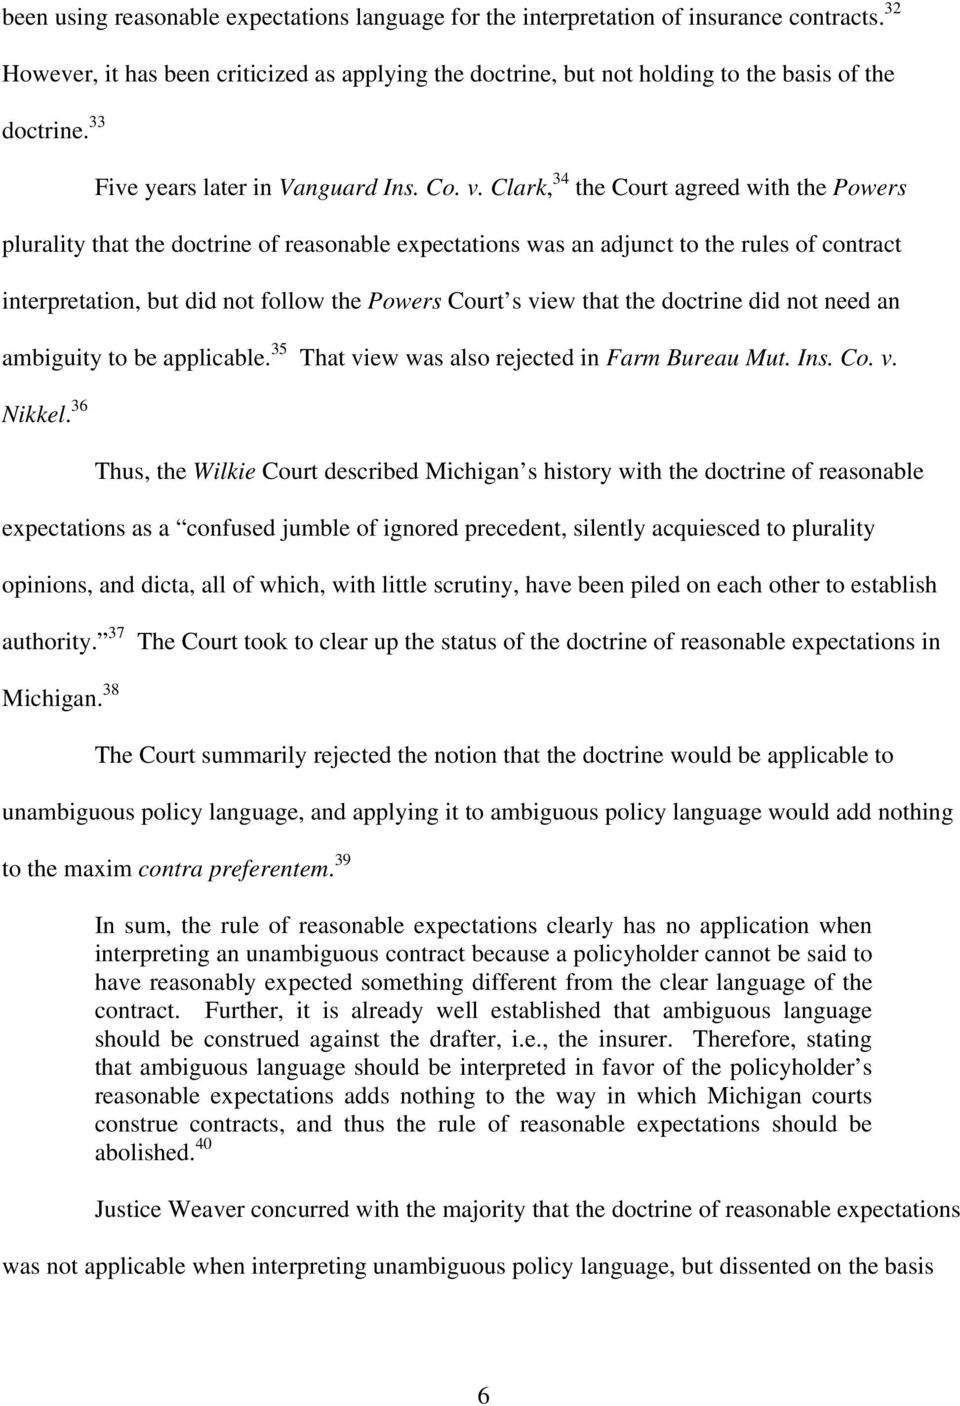 Clark, 34 the Court agreed with the Powers plurality that the doctrine of reasonable expectations was an adjunct to the rules of contract interpretation, but did not follow the Powers Court s view